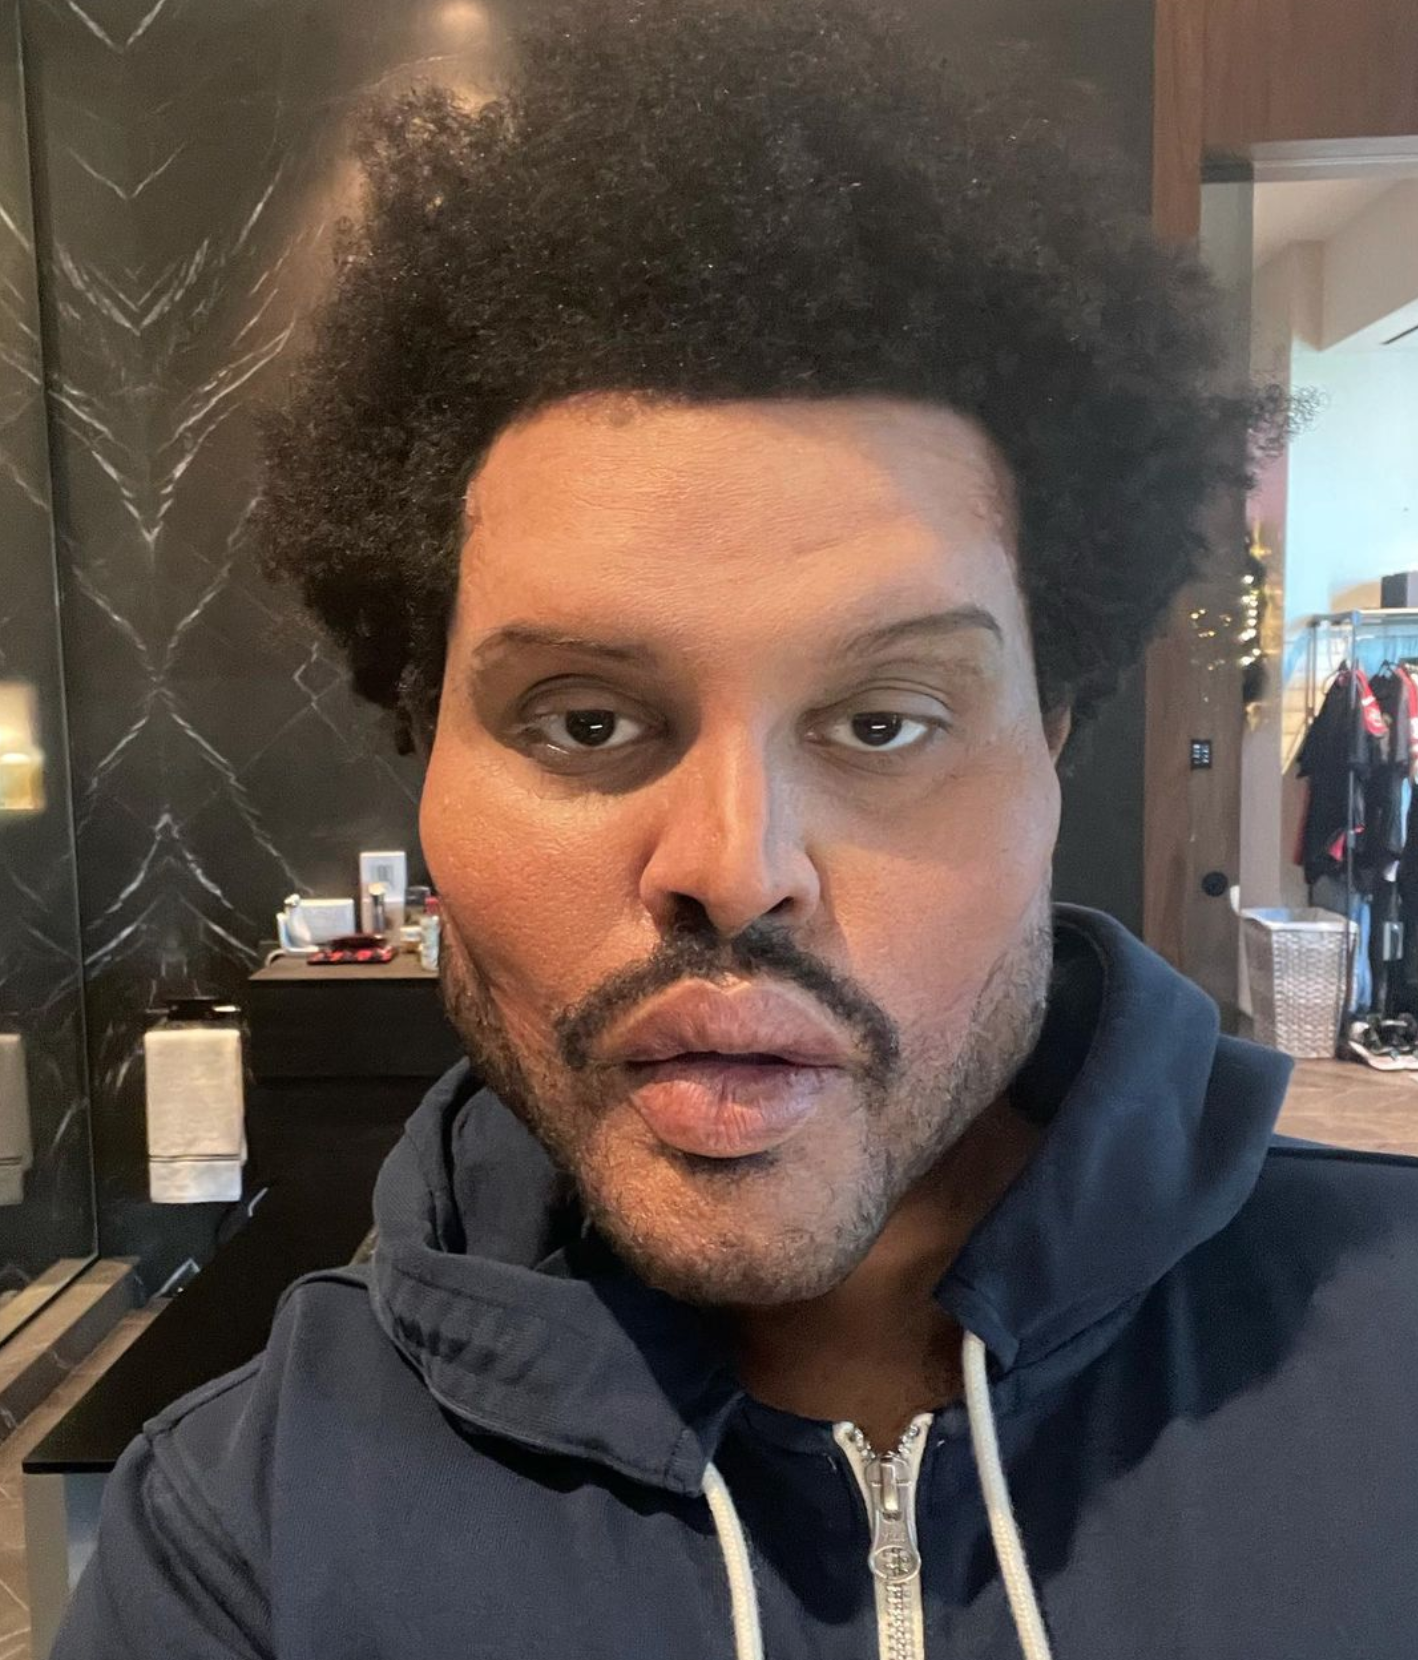 The Weekend posts a selfie of his new face on his Instagram account